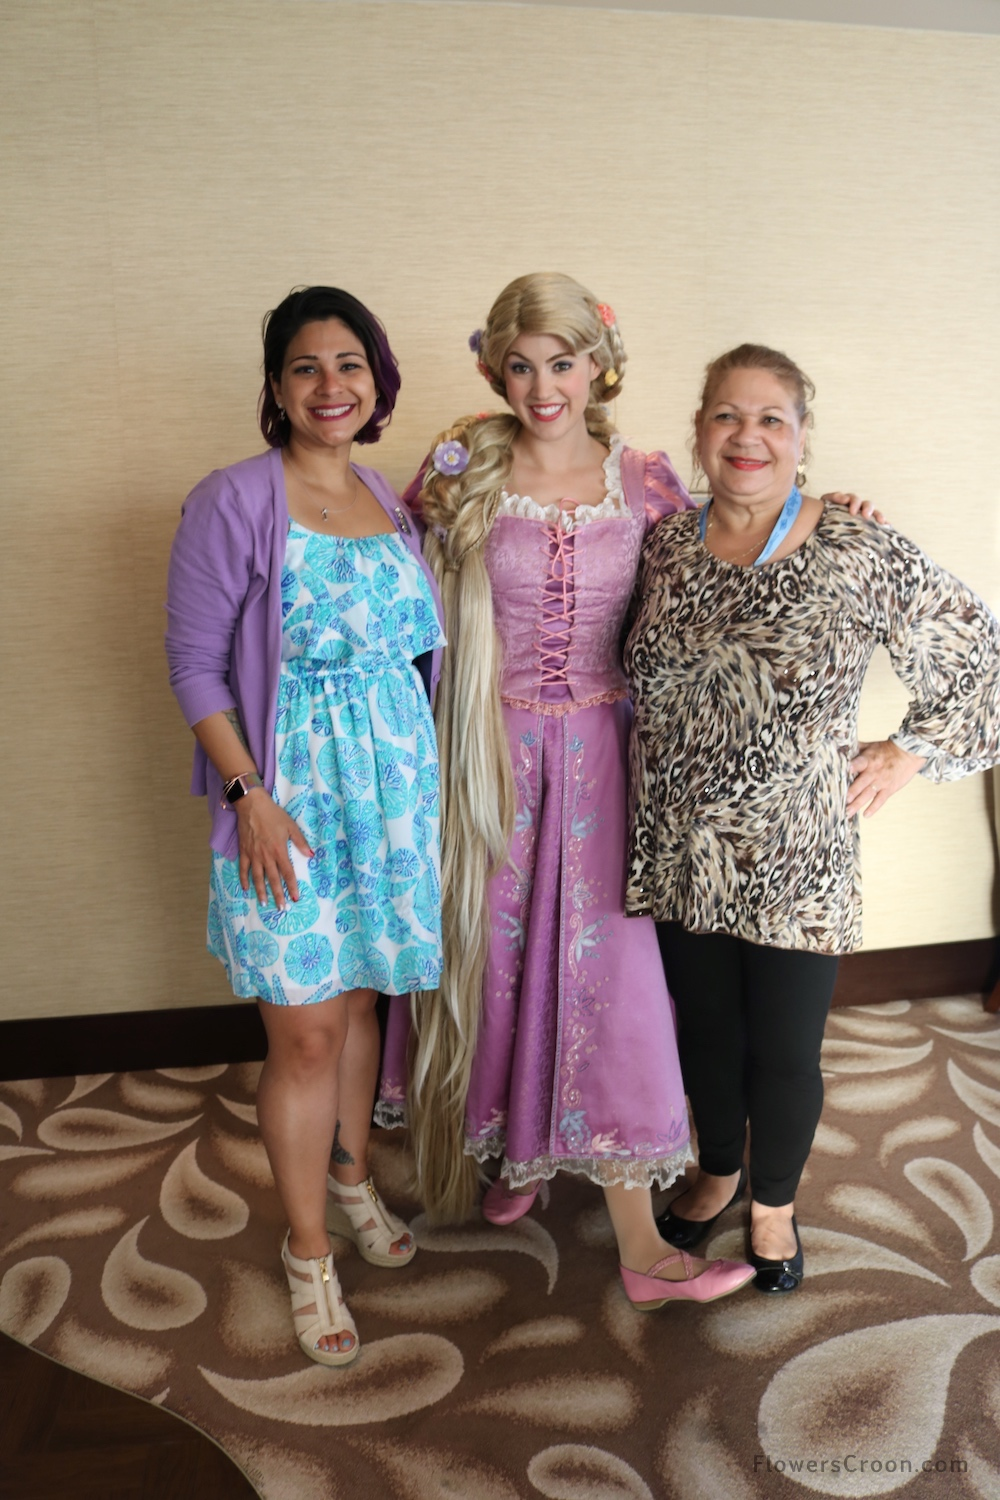 Hanging out with Rapunzel in the Concierge Lounge onboard the Disney Wonder